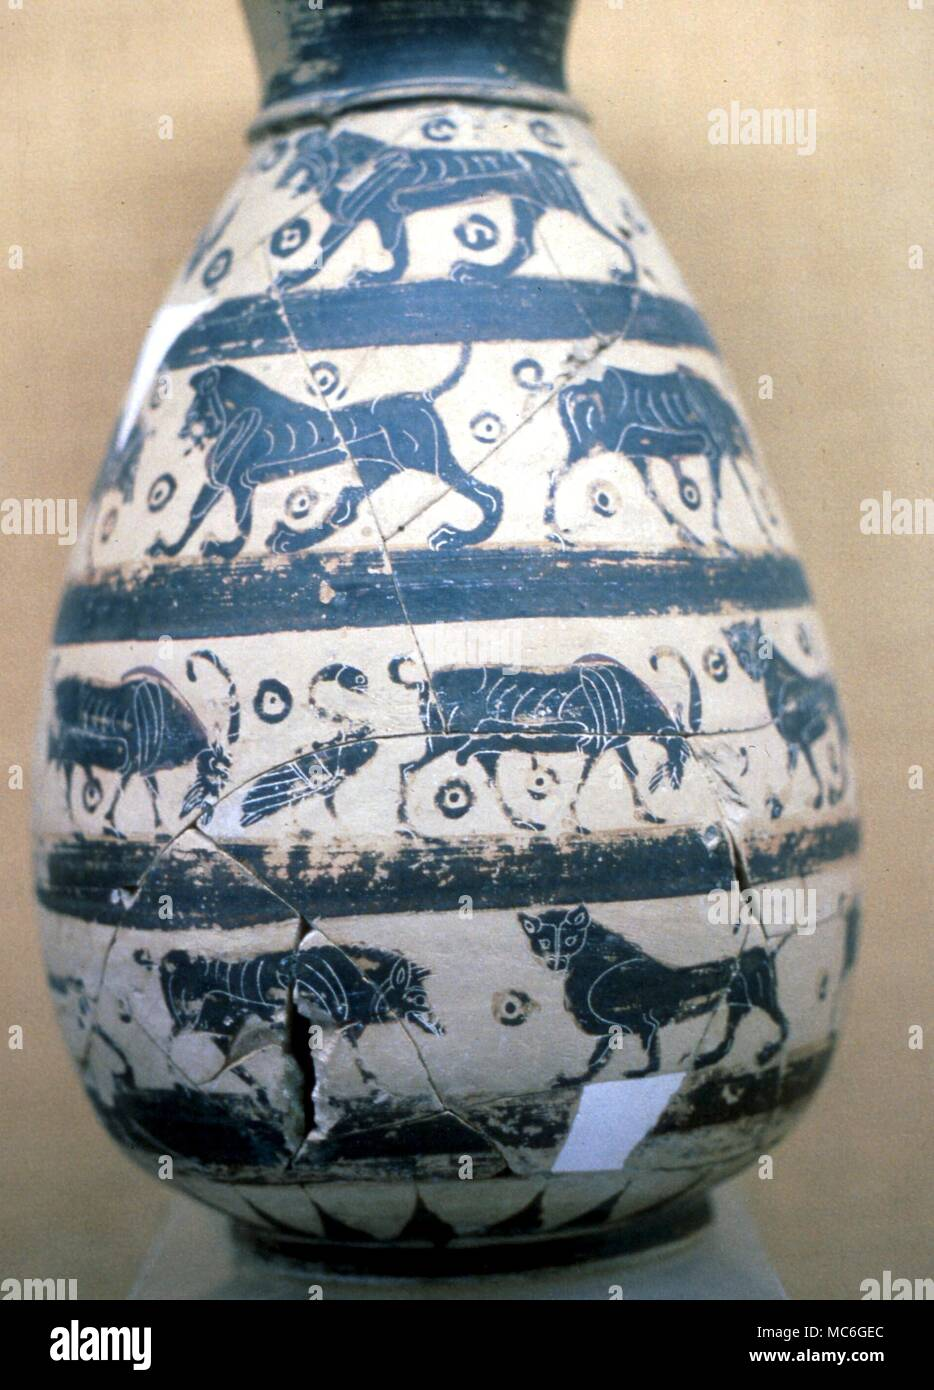 Lions and other animals on an ancient Greek vase in the Mykonos Museum - Stock Image